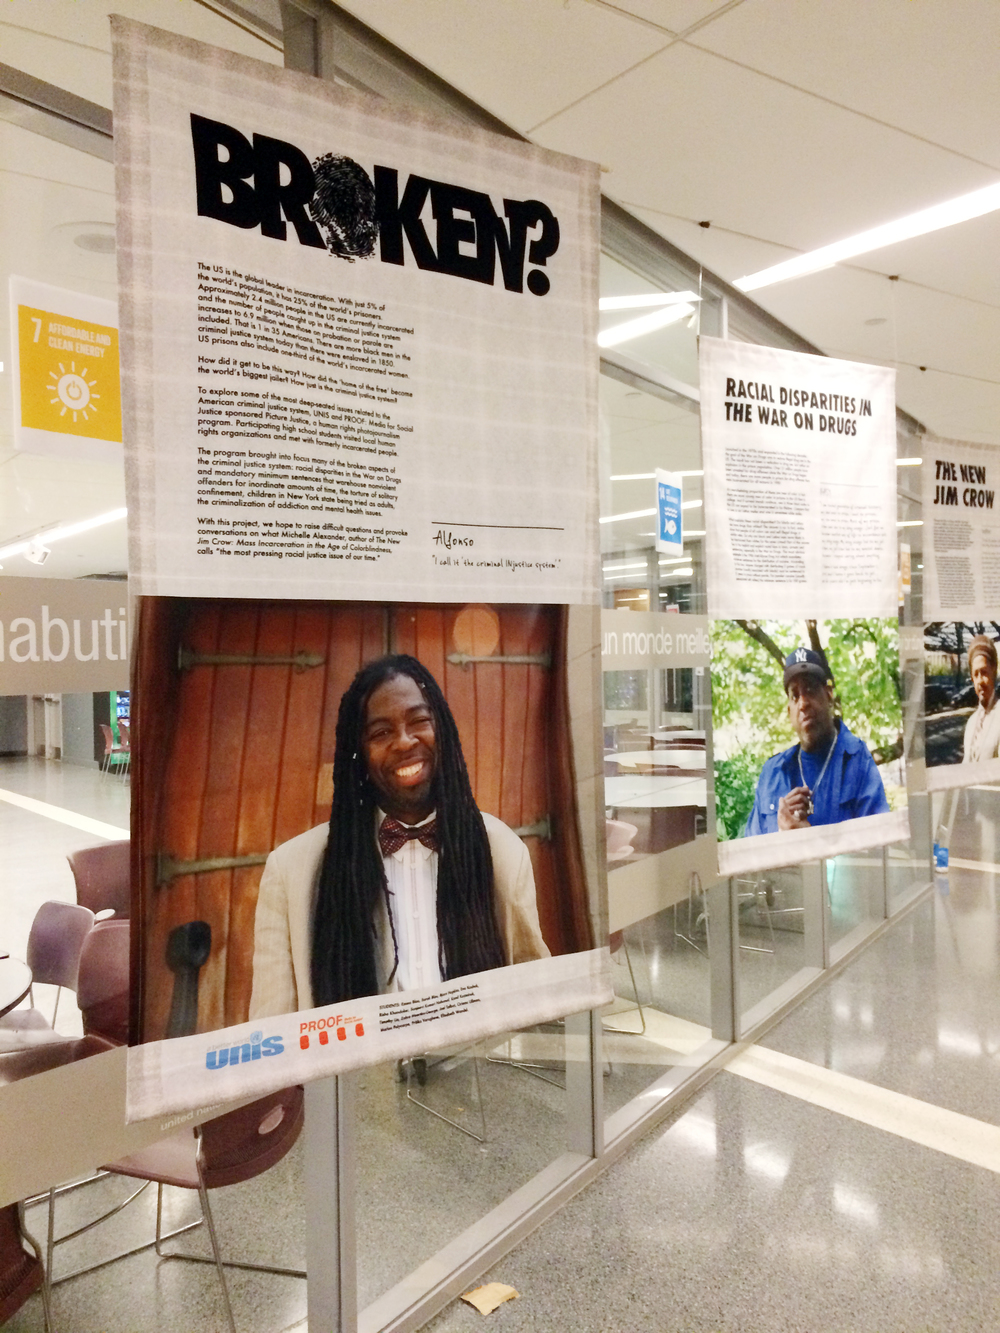 """Broken?"" at UNIS, November 2015. Photo courtesy of PROOF: Media for Social Justice and UNIS."